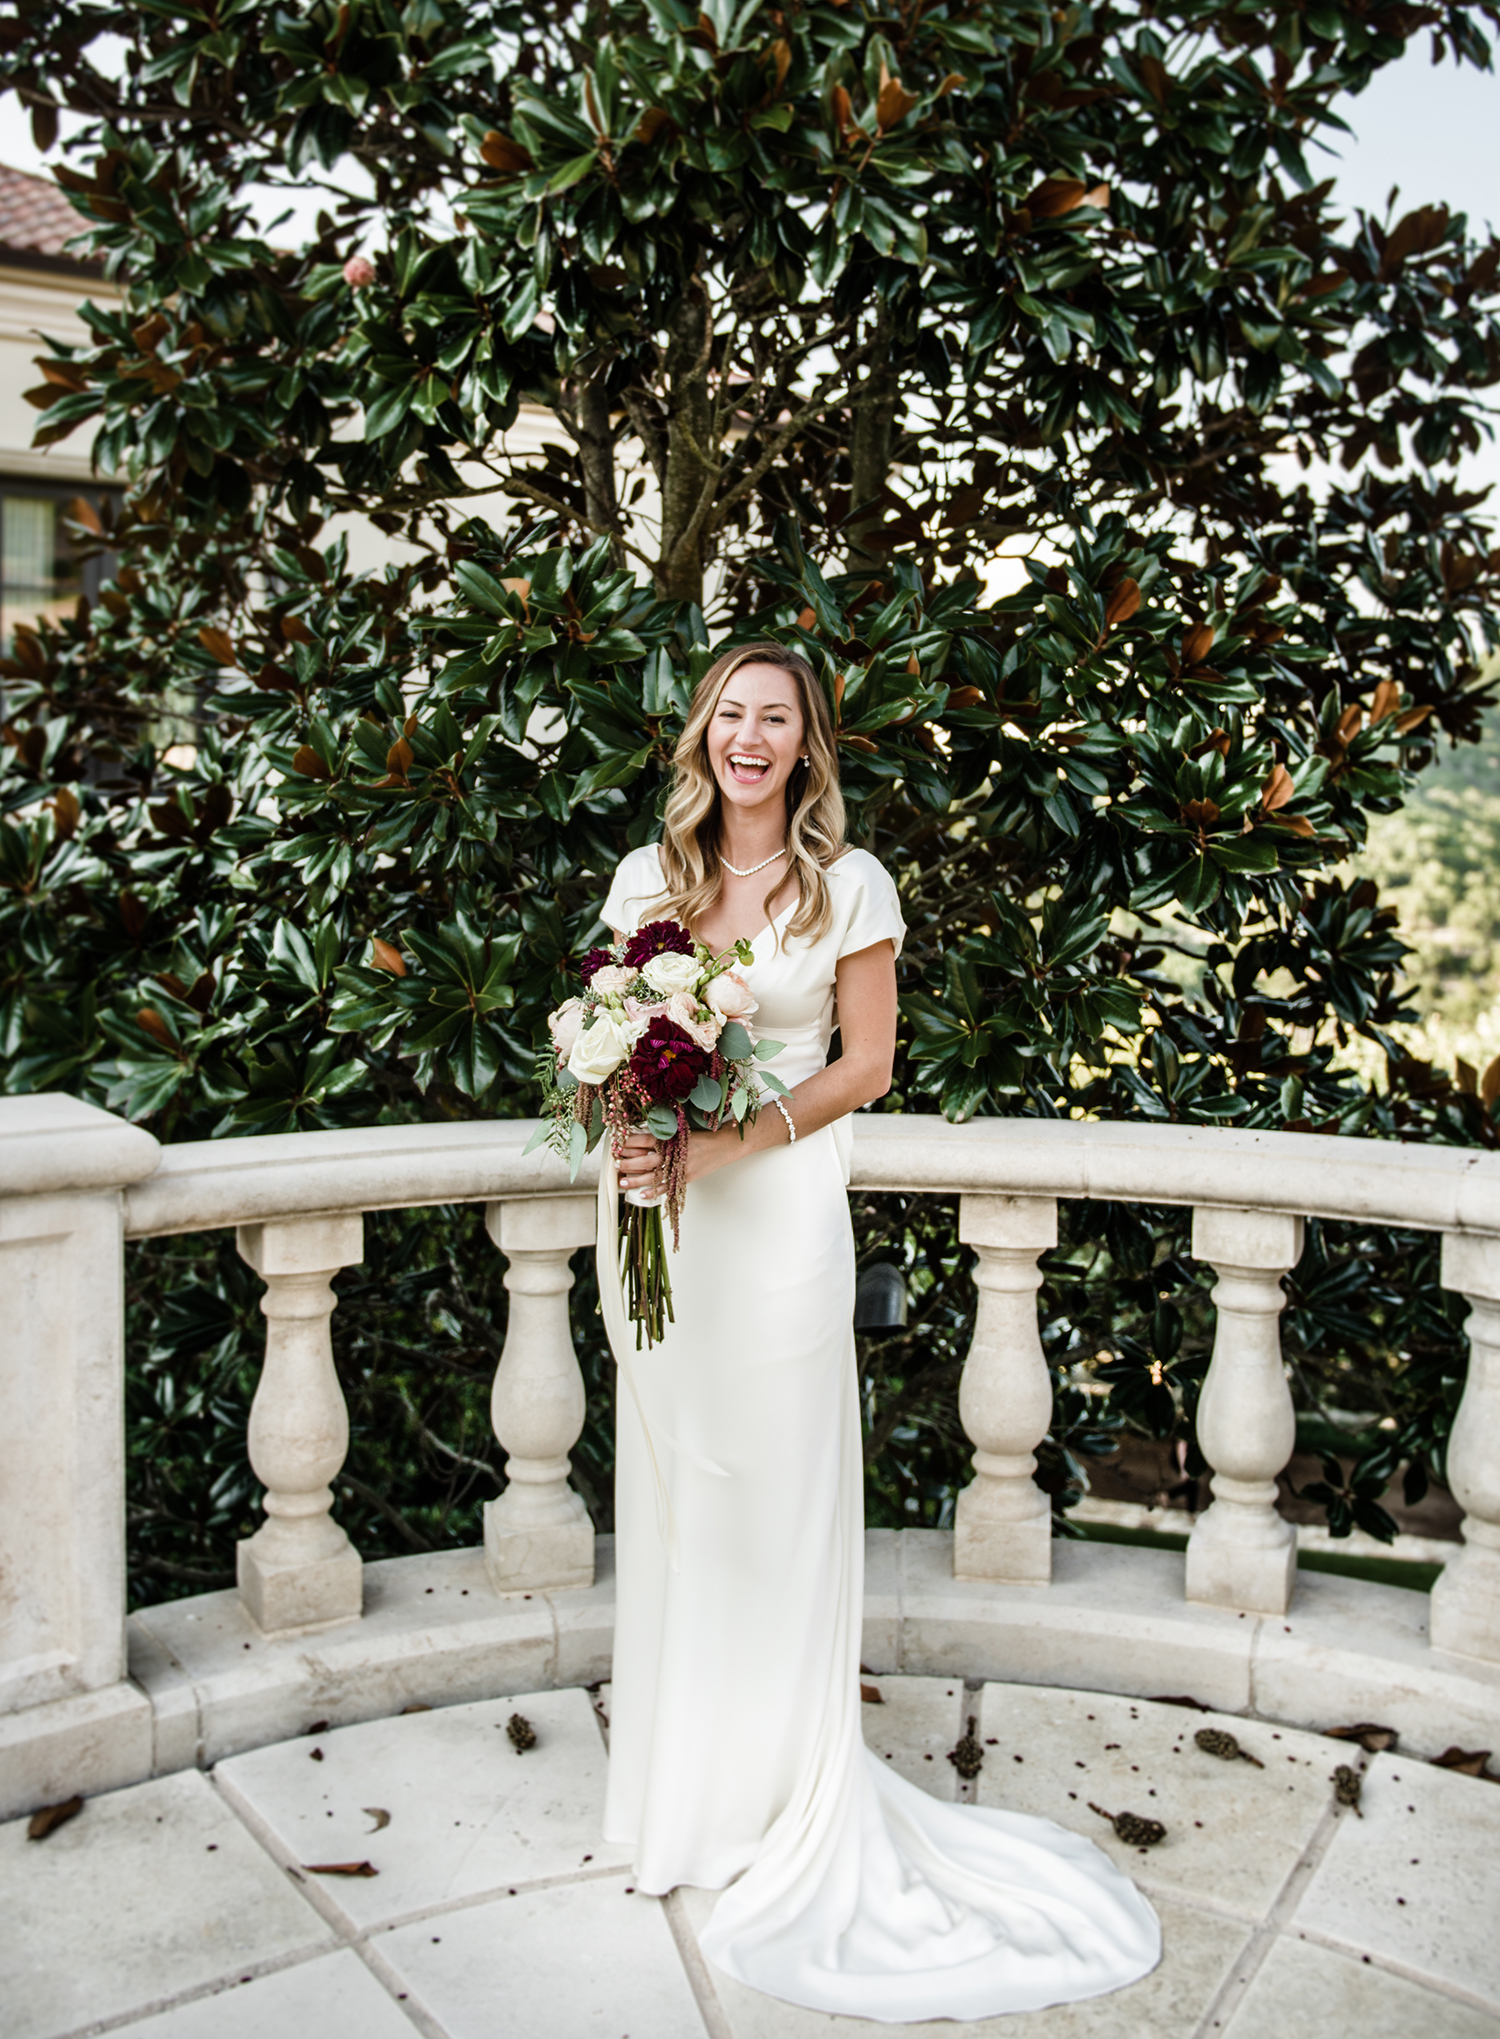 livvyland-blog-olivia-watson-wedding-villa-del-lago-austin-texas-fall-blush-burgundy-classic-romantic-satin-gown-1